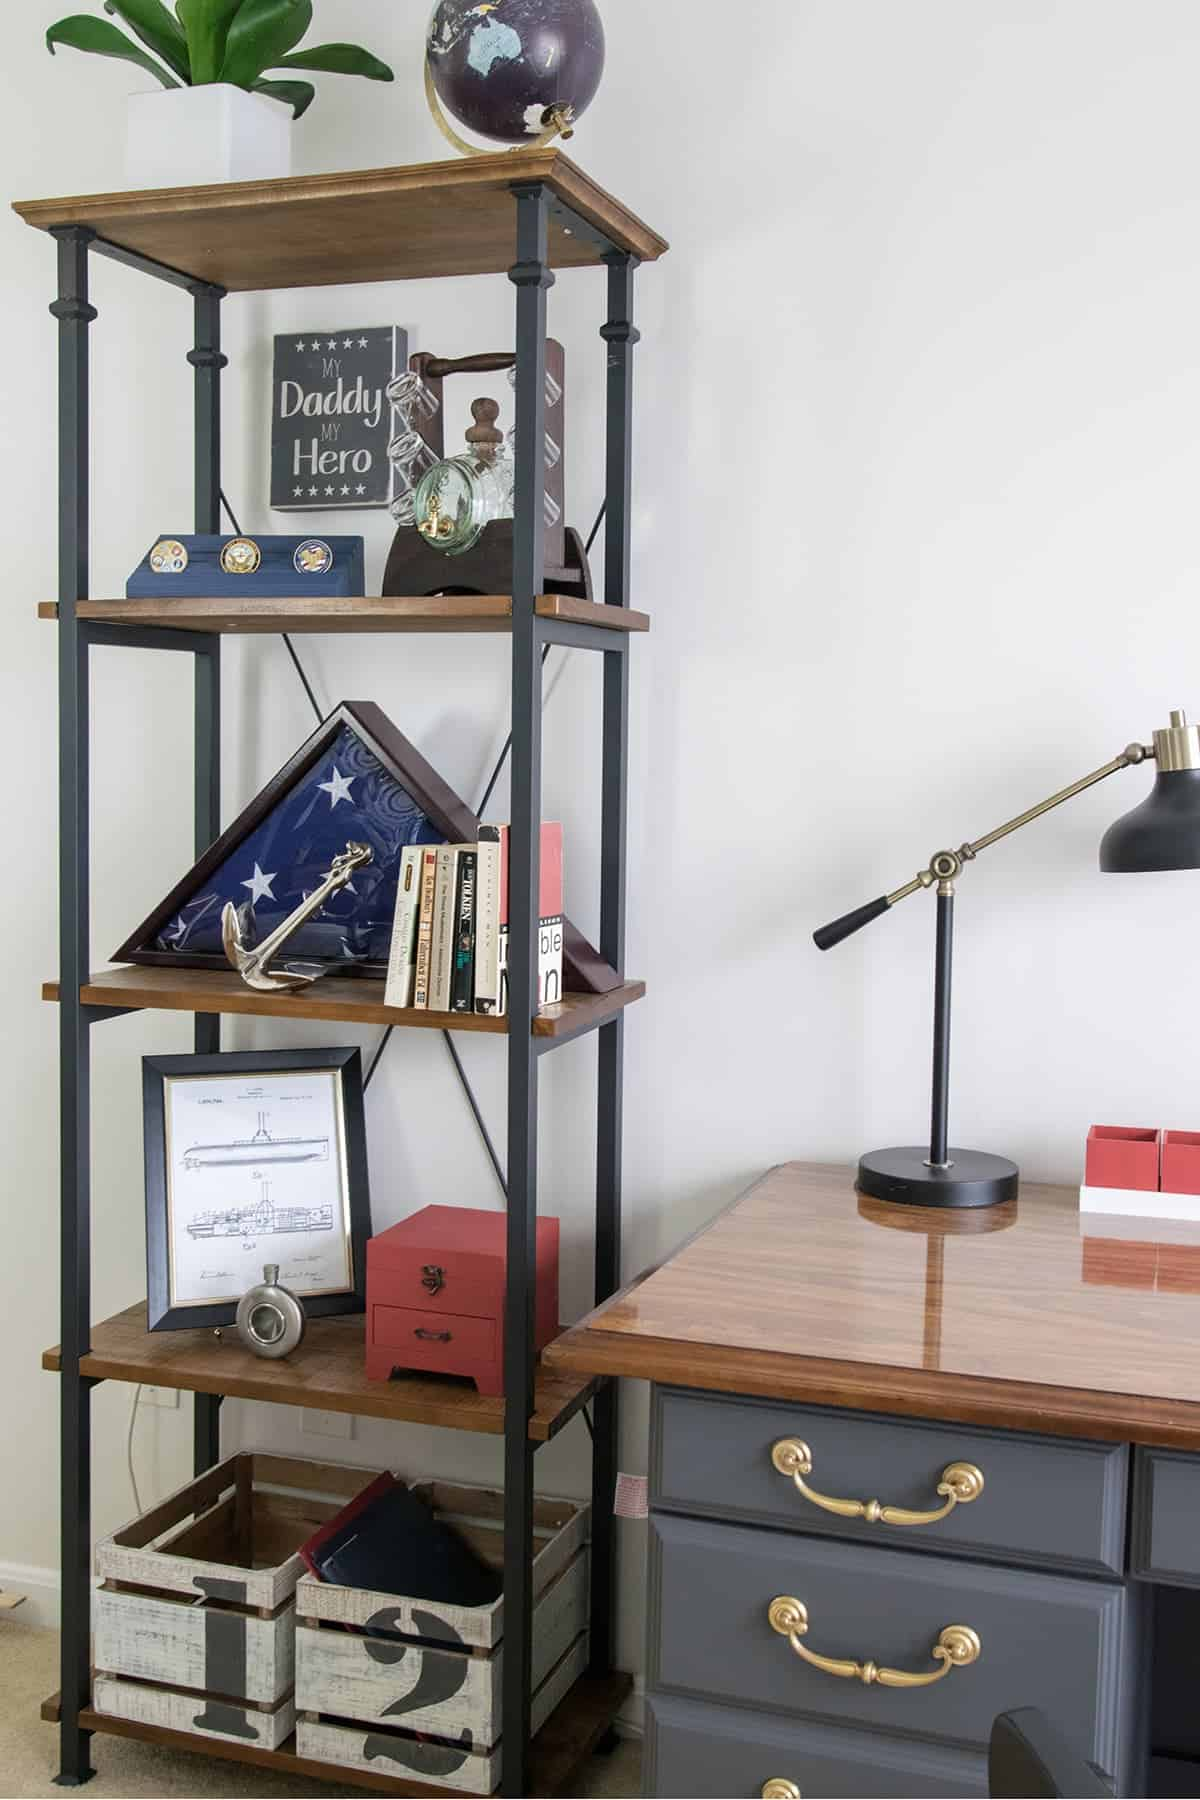 Industrial looking wood and black metal office shelf with patriotic pictures and decor next to desk.